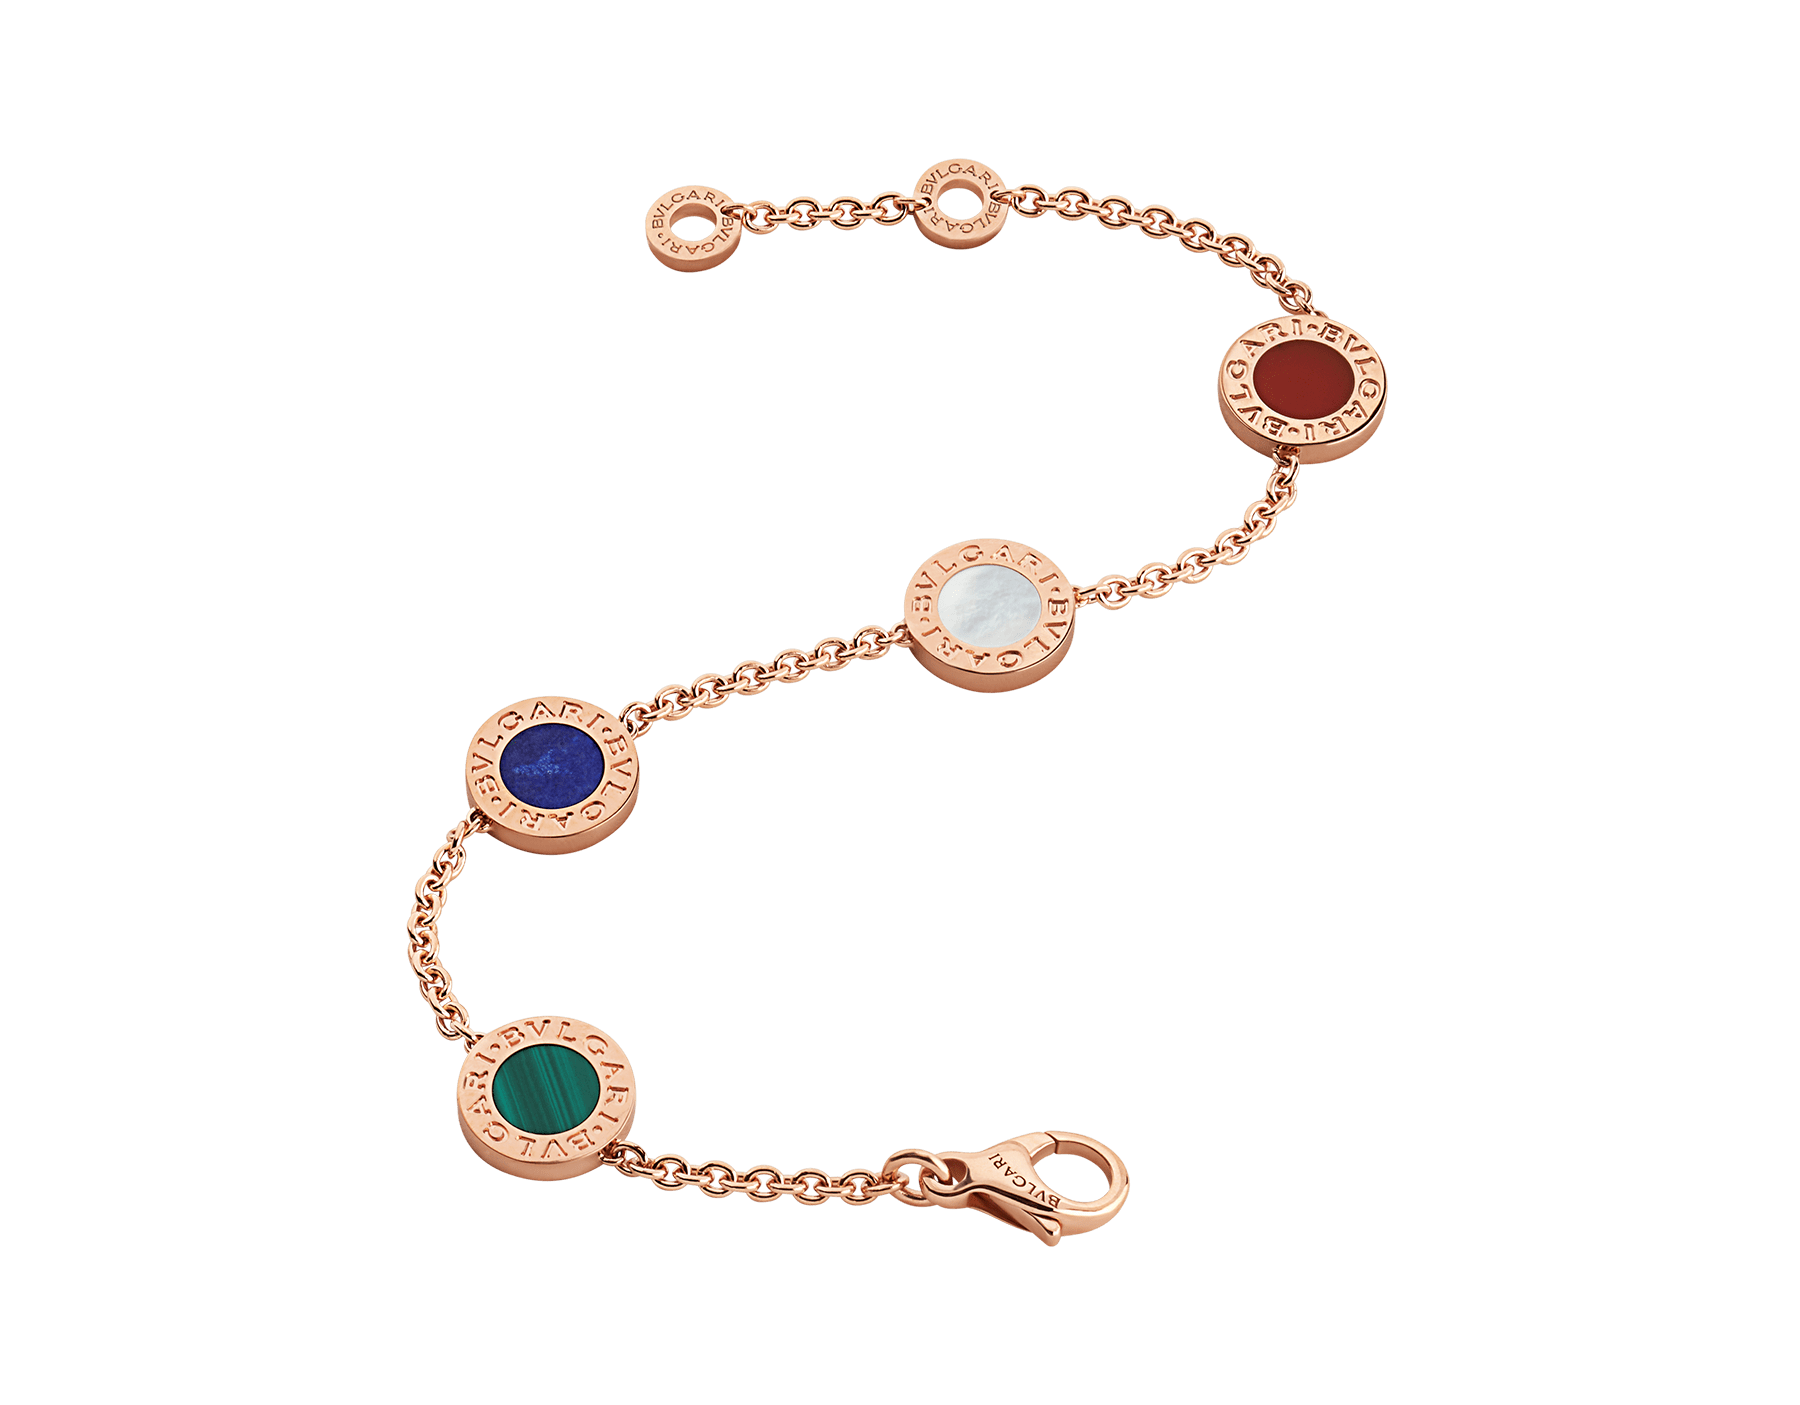 BVLGARI BVLGARI 18 kt rose gold bracelet set with carnelian, lapis, malachite and mother of pearl elements BR857842 image 2